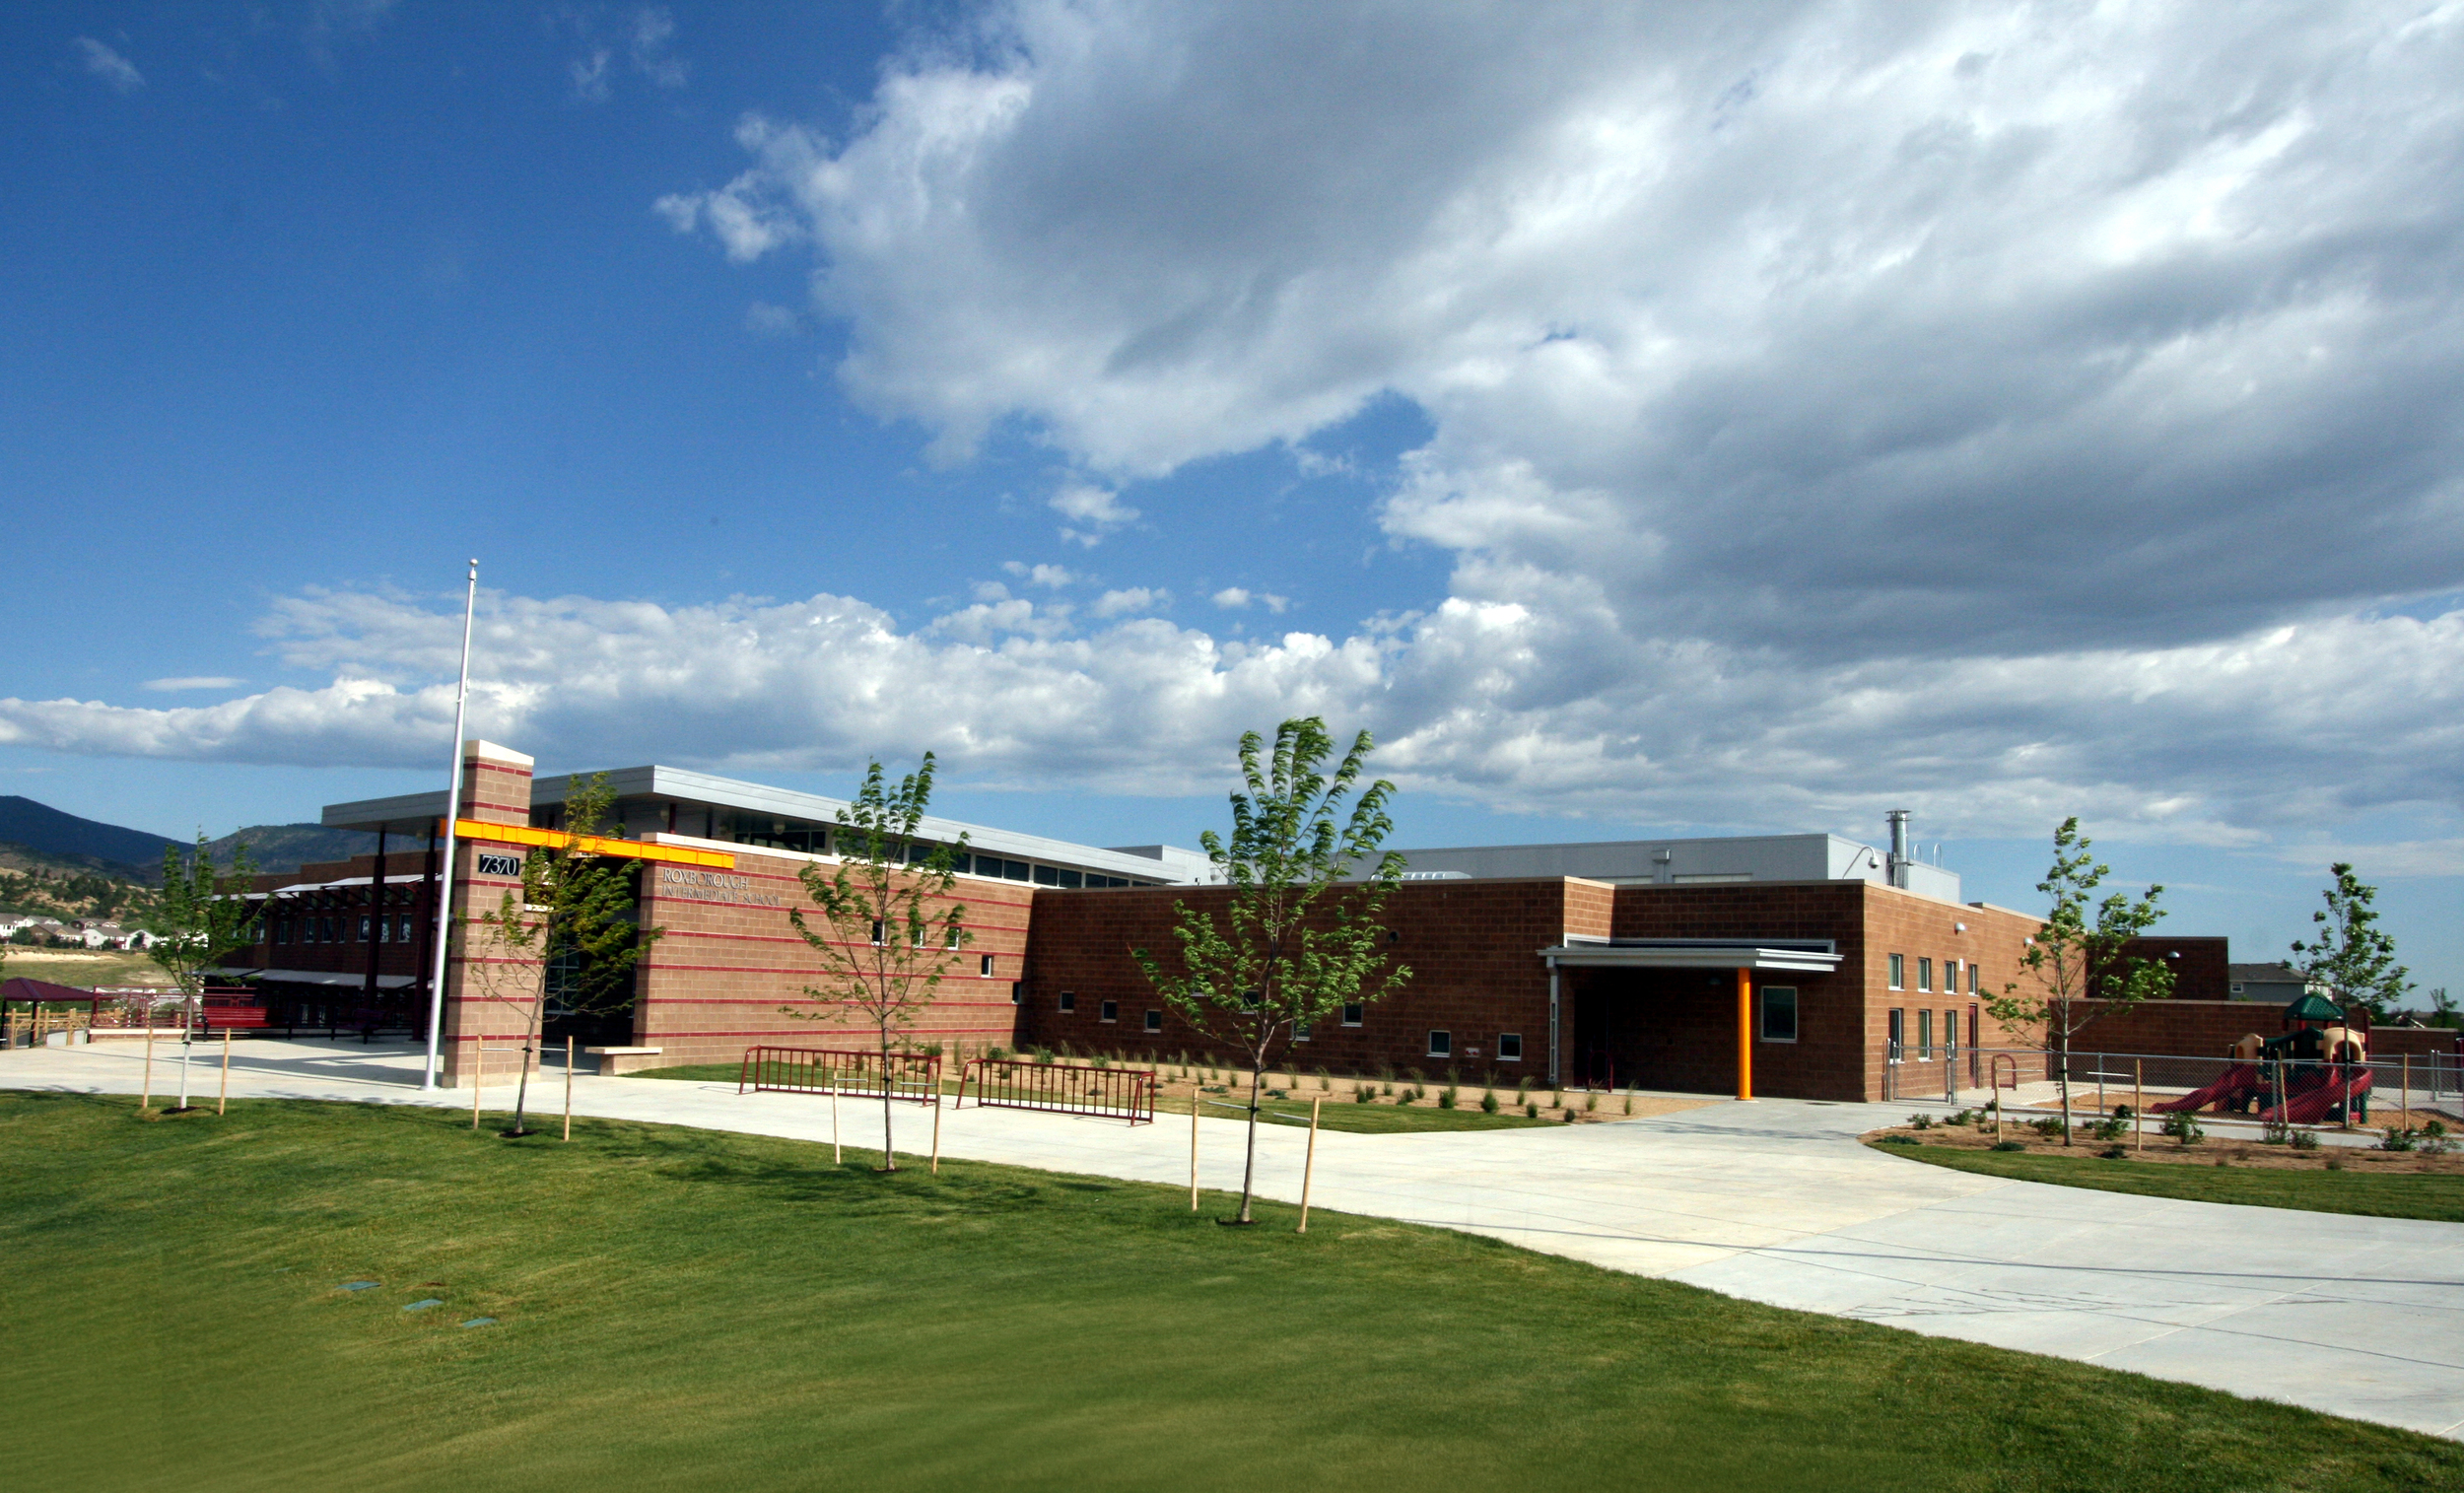 ROXBOROUGH INTERMEDIATE SCHOOL -  A new 66,864 SF, 2-story elementary school with crawlspace/basement. This project incorporated sustainable building elements such as motion-sensor faucets, high efficiency HVAC equipment, exterior solar shading and construction waste recycling.